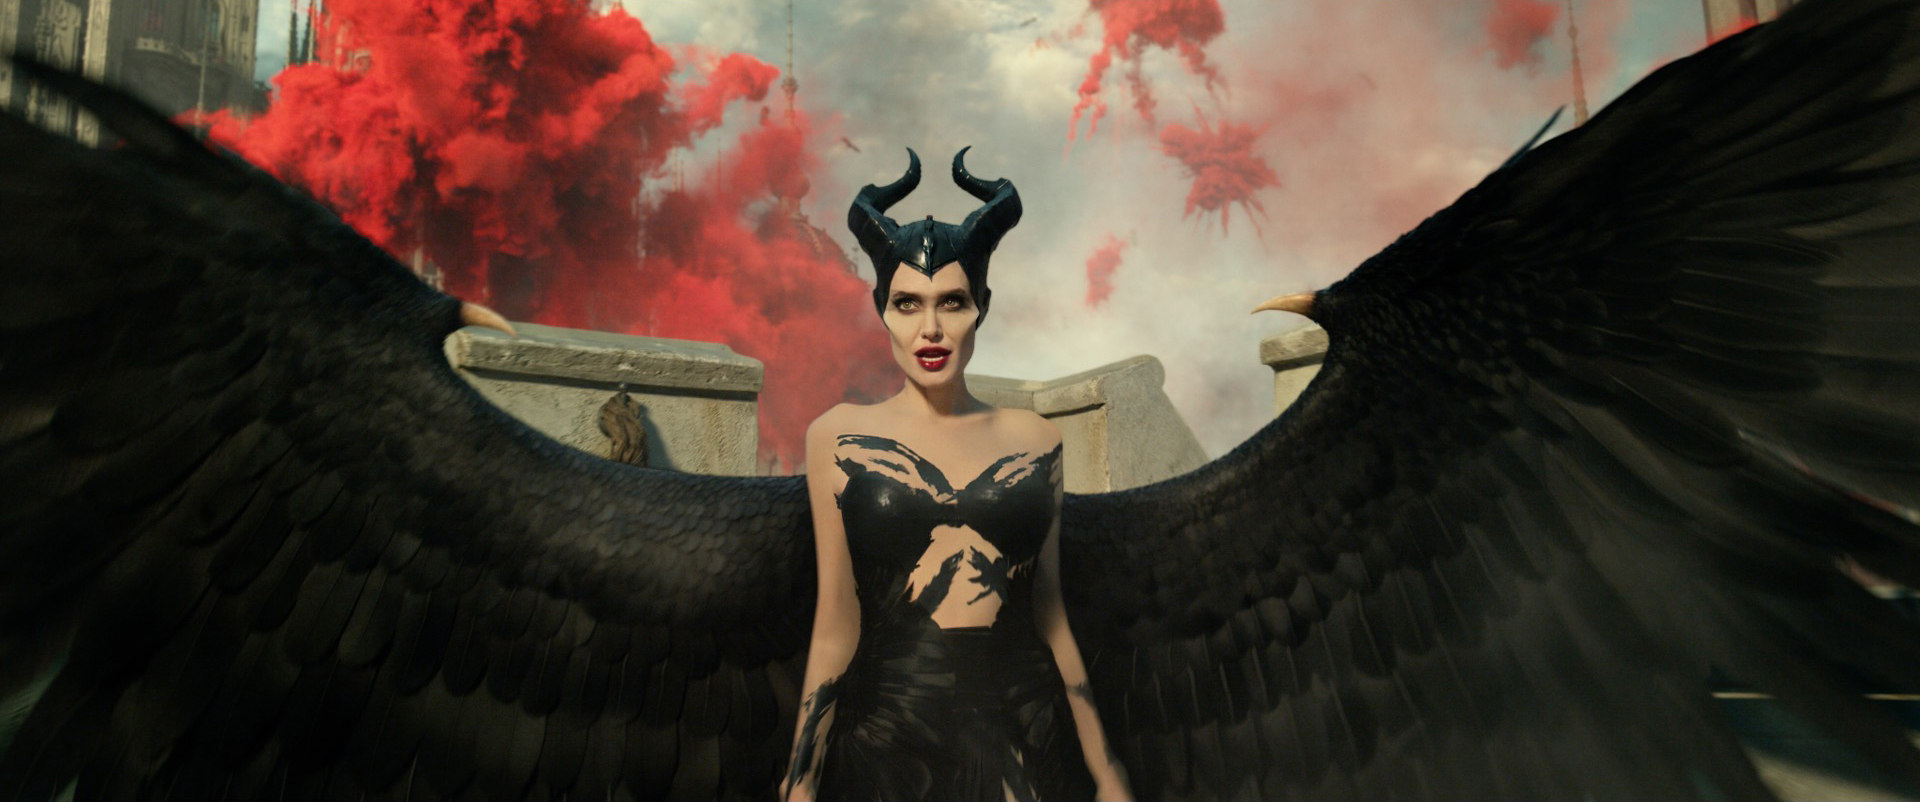 [News] New Trailer For MALEFICENT: MISTRESS OF EVIL